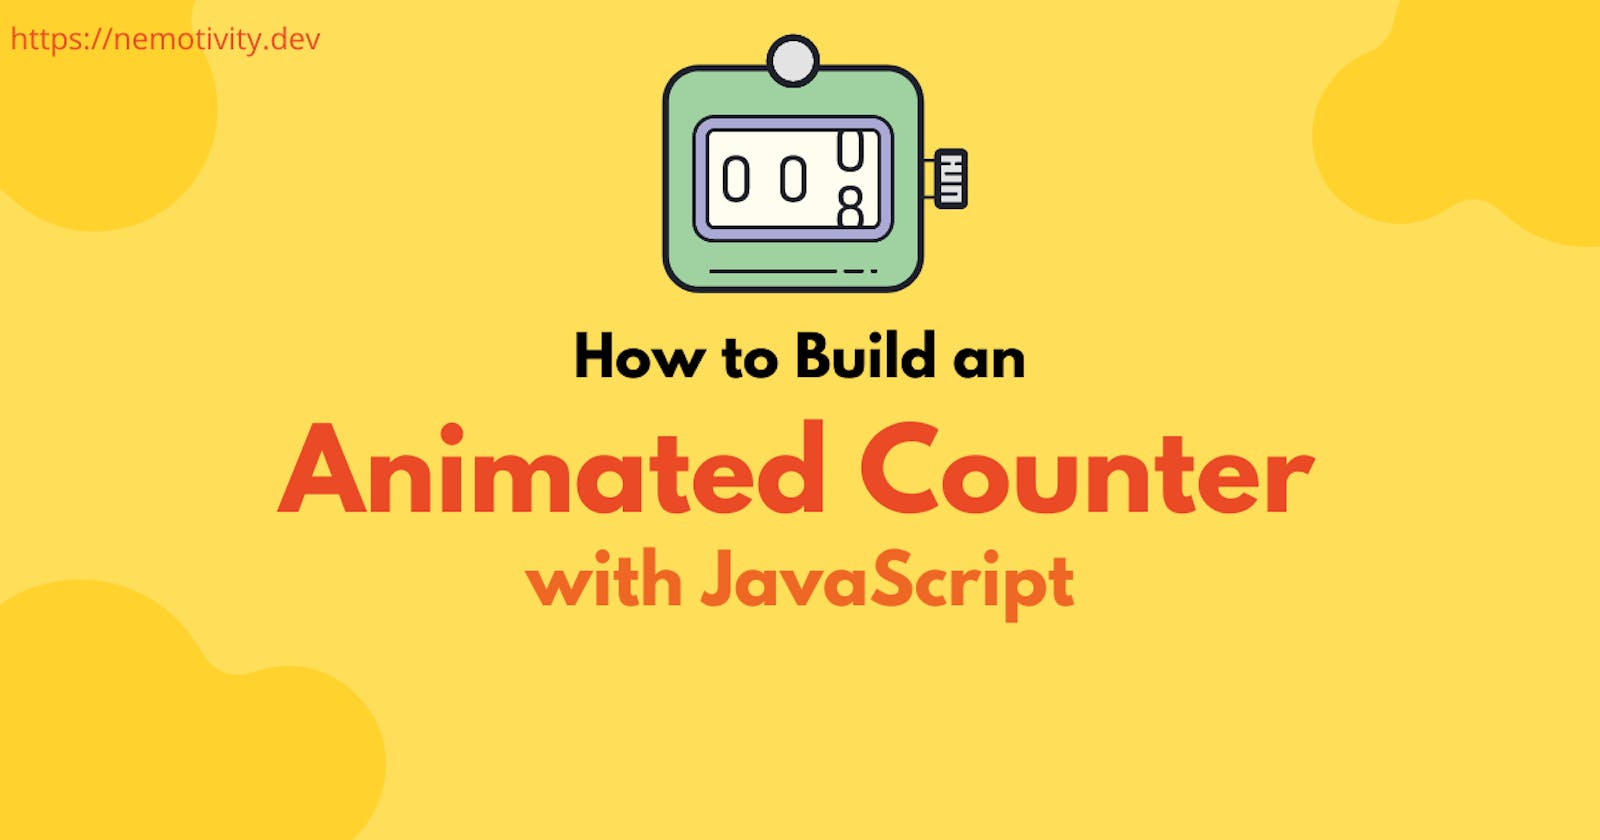 How to Build an Animated Counter with JavaScript